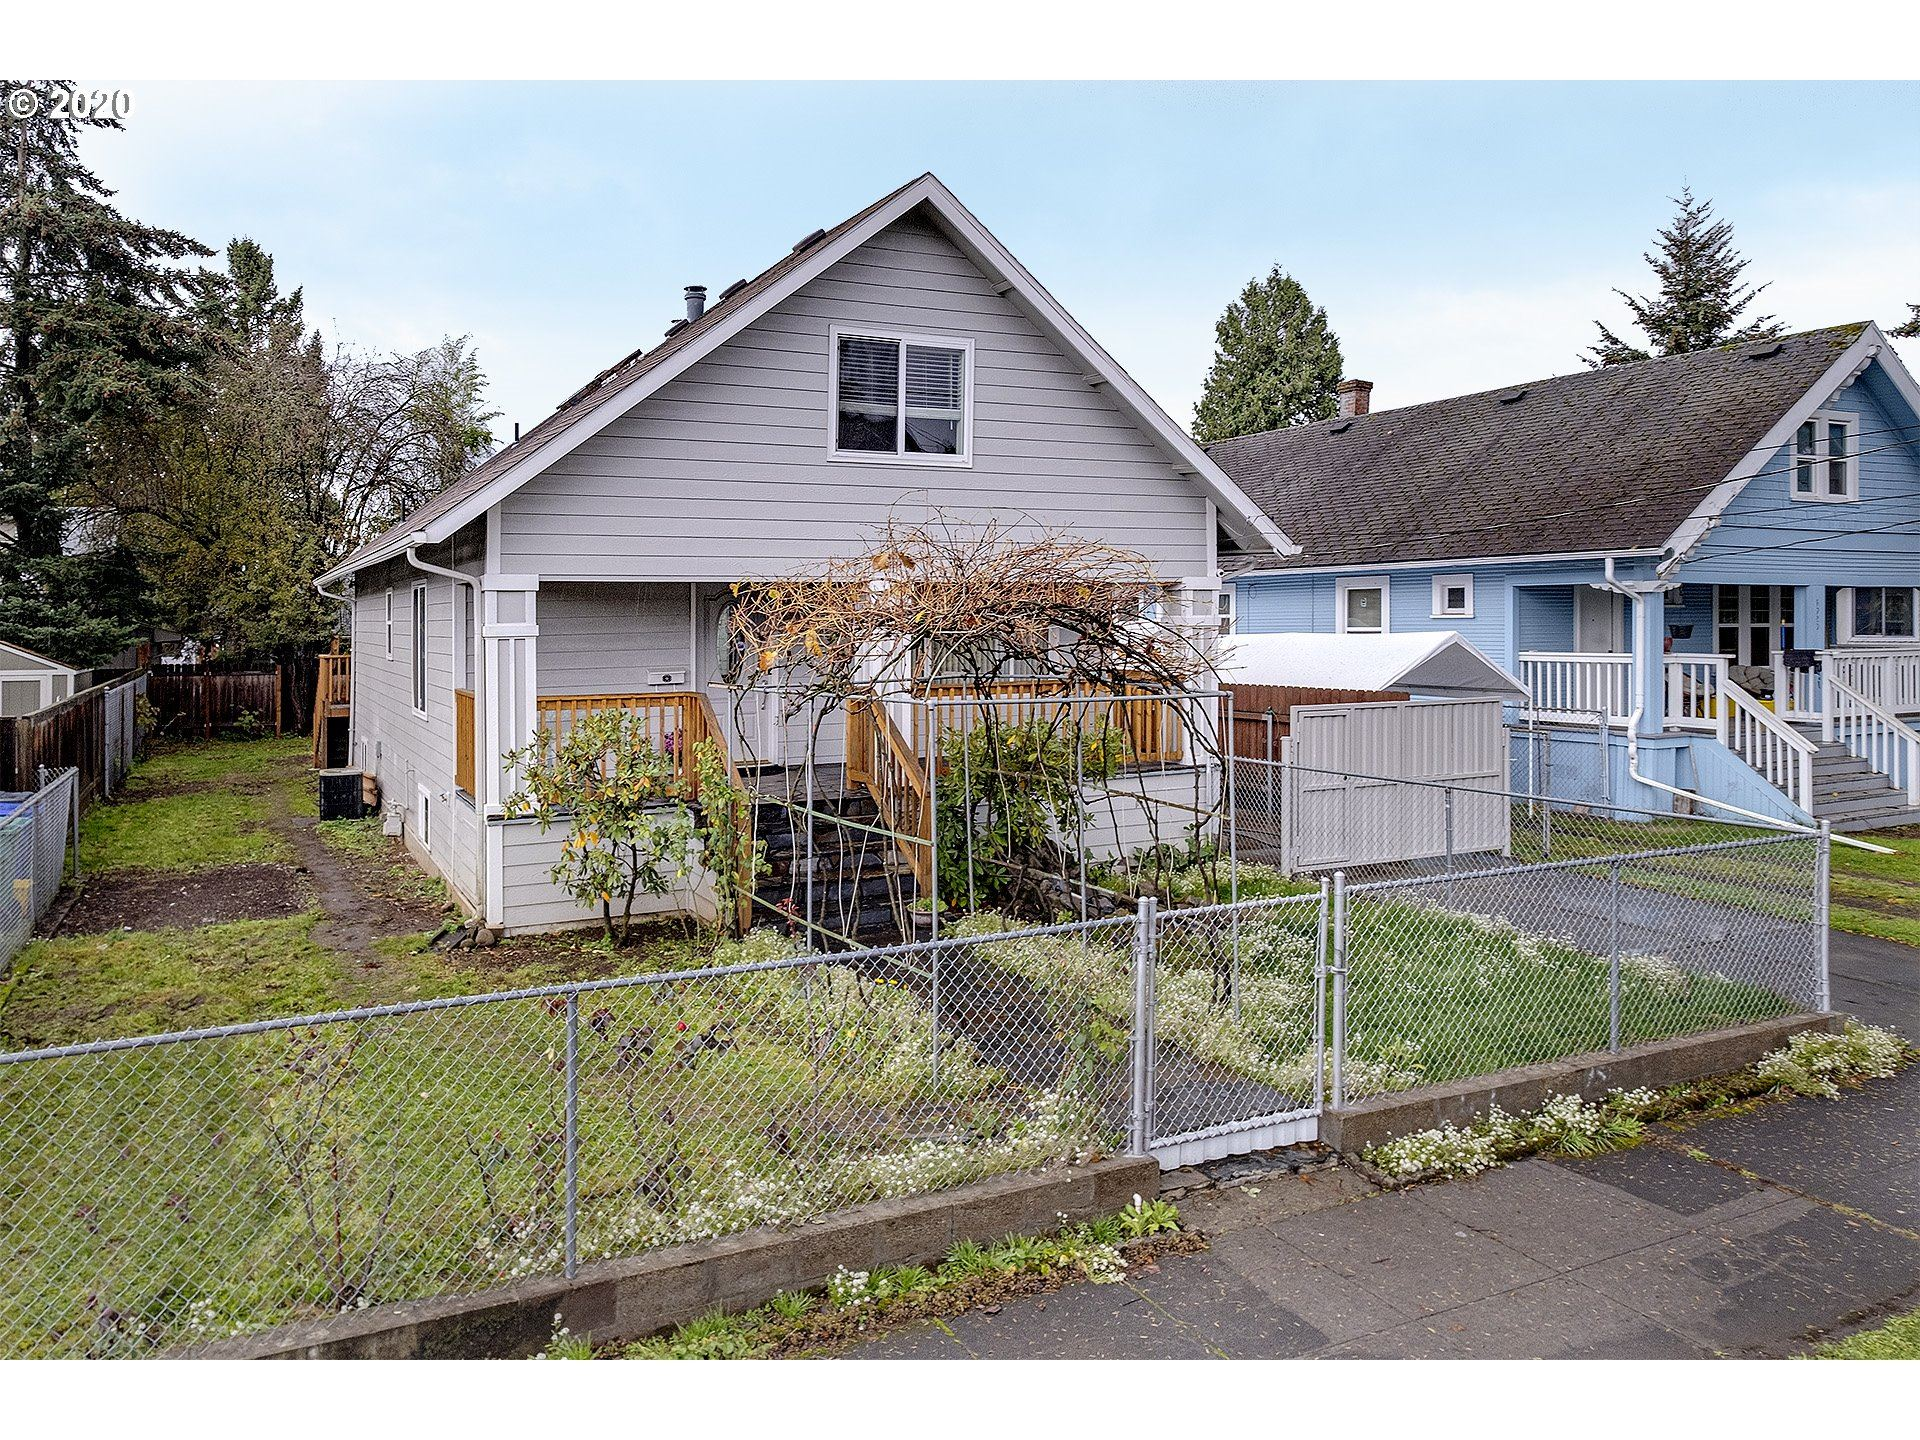 4912 SE 74TH AVE, Portland, OR 97206 - MLS#: 20043726